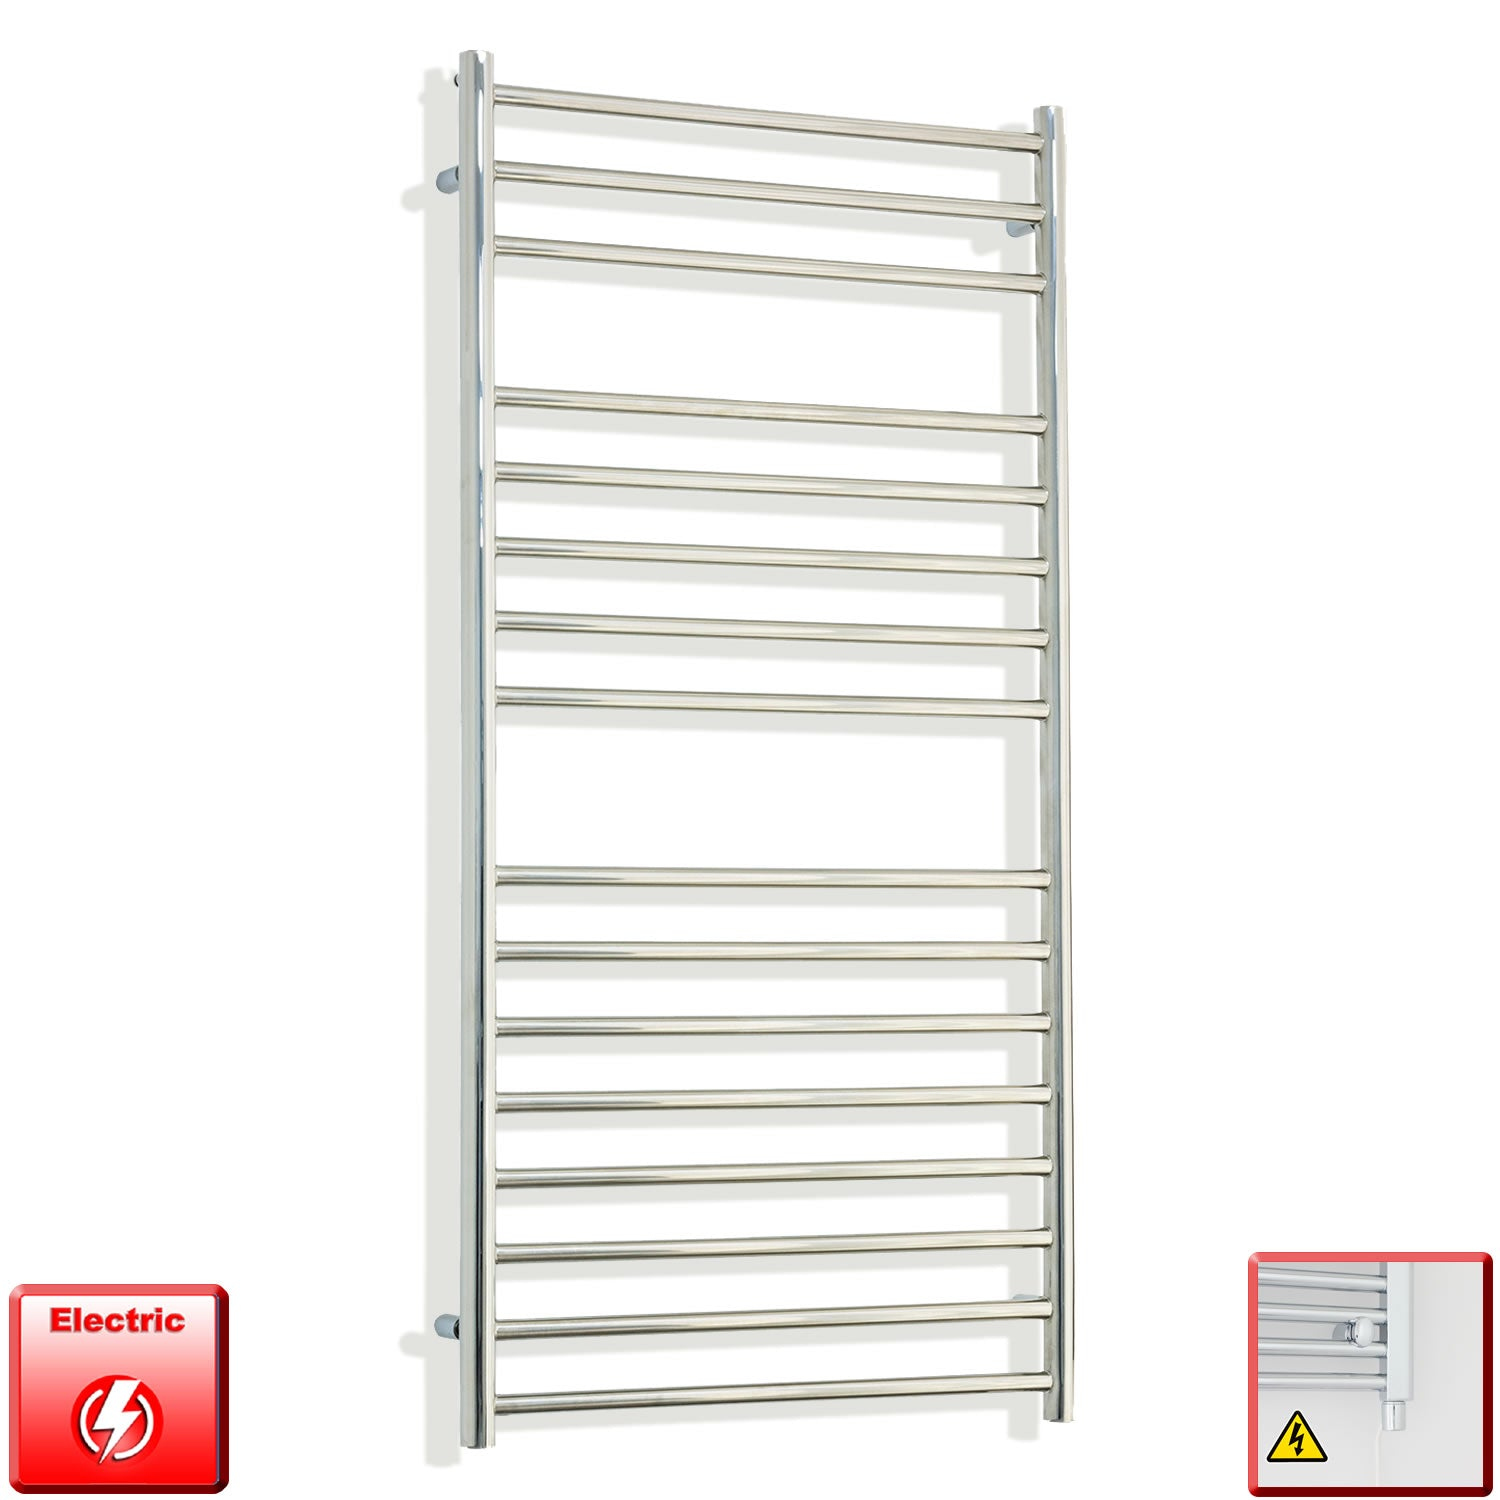 1200 mm High 600 mm Wide Pre-Filled Electric Stainless Steel Heated Towel Rail Radiator single heat heating element